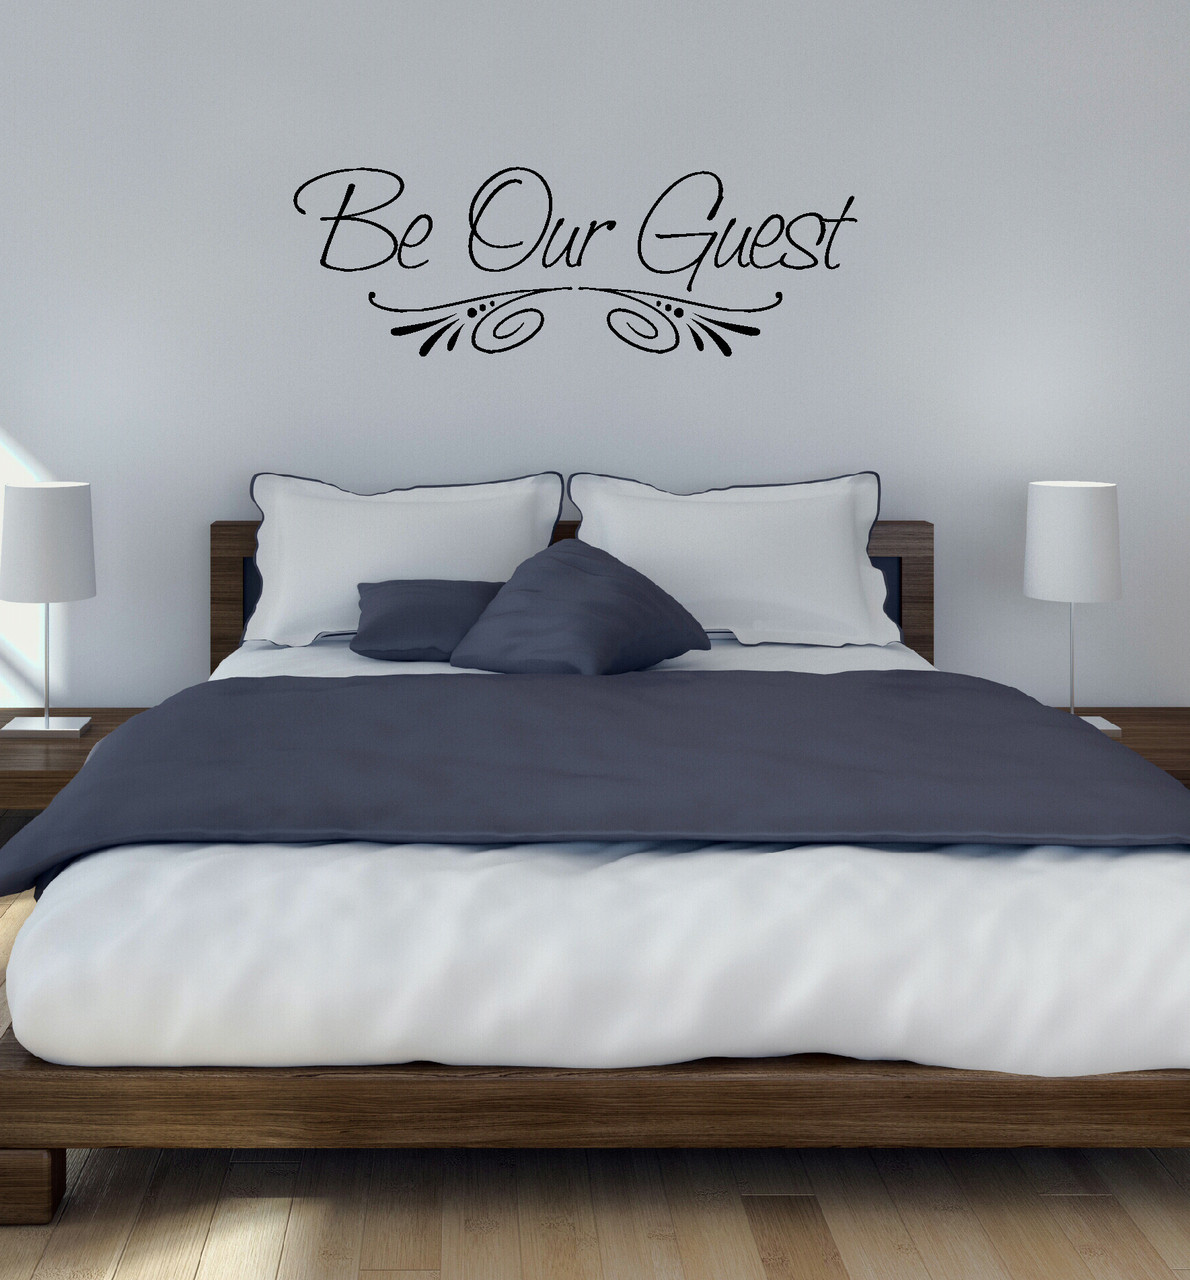 Be Our Guest Wall Decal Sticker - for Home Decor